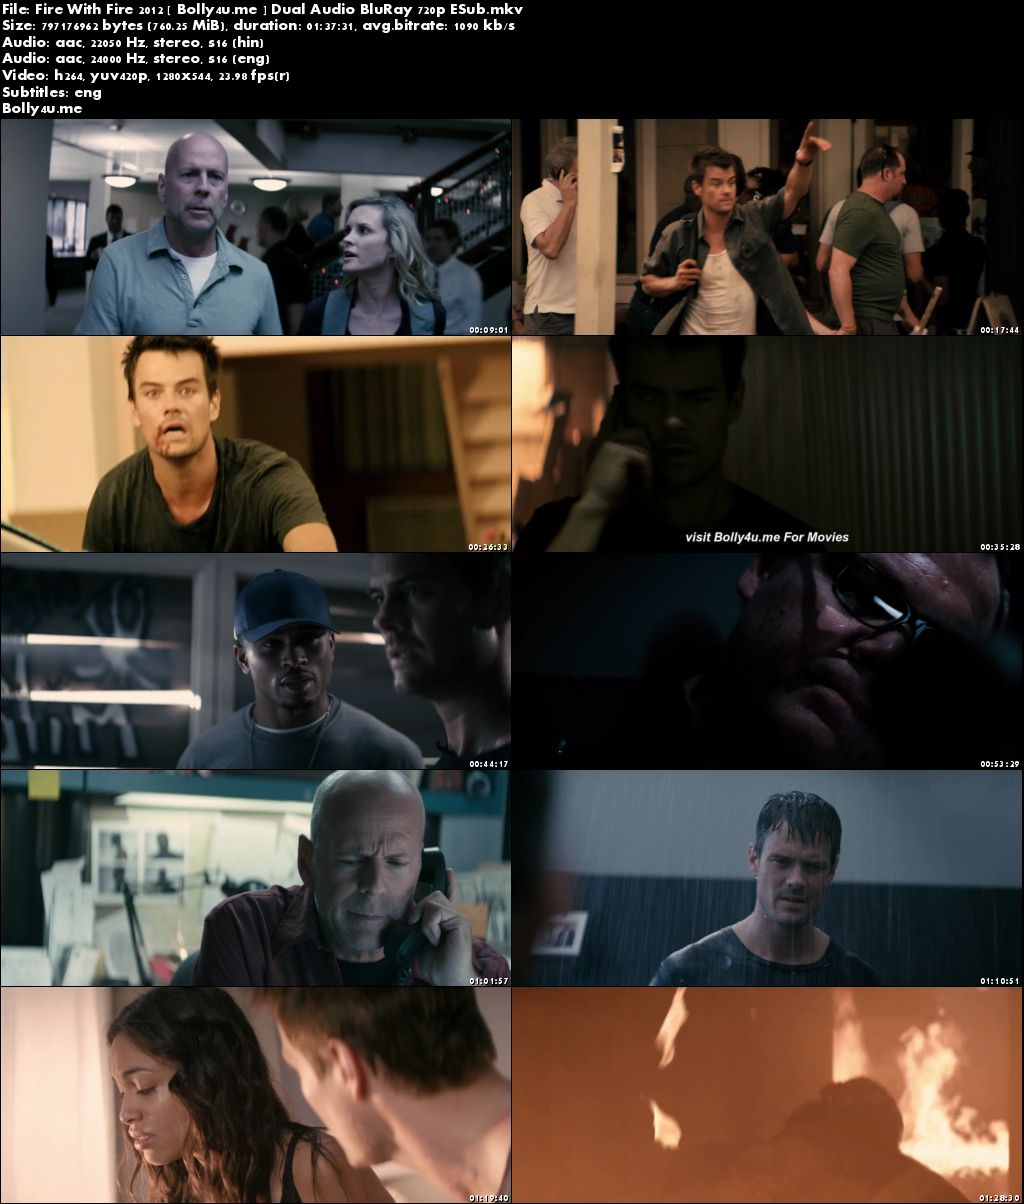 Fire With Fire 2012 BluRay 300MB Hindi Dual Audio 480p ESub Download